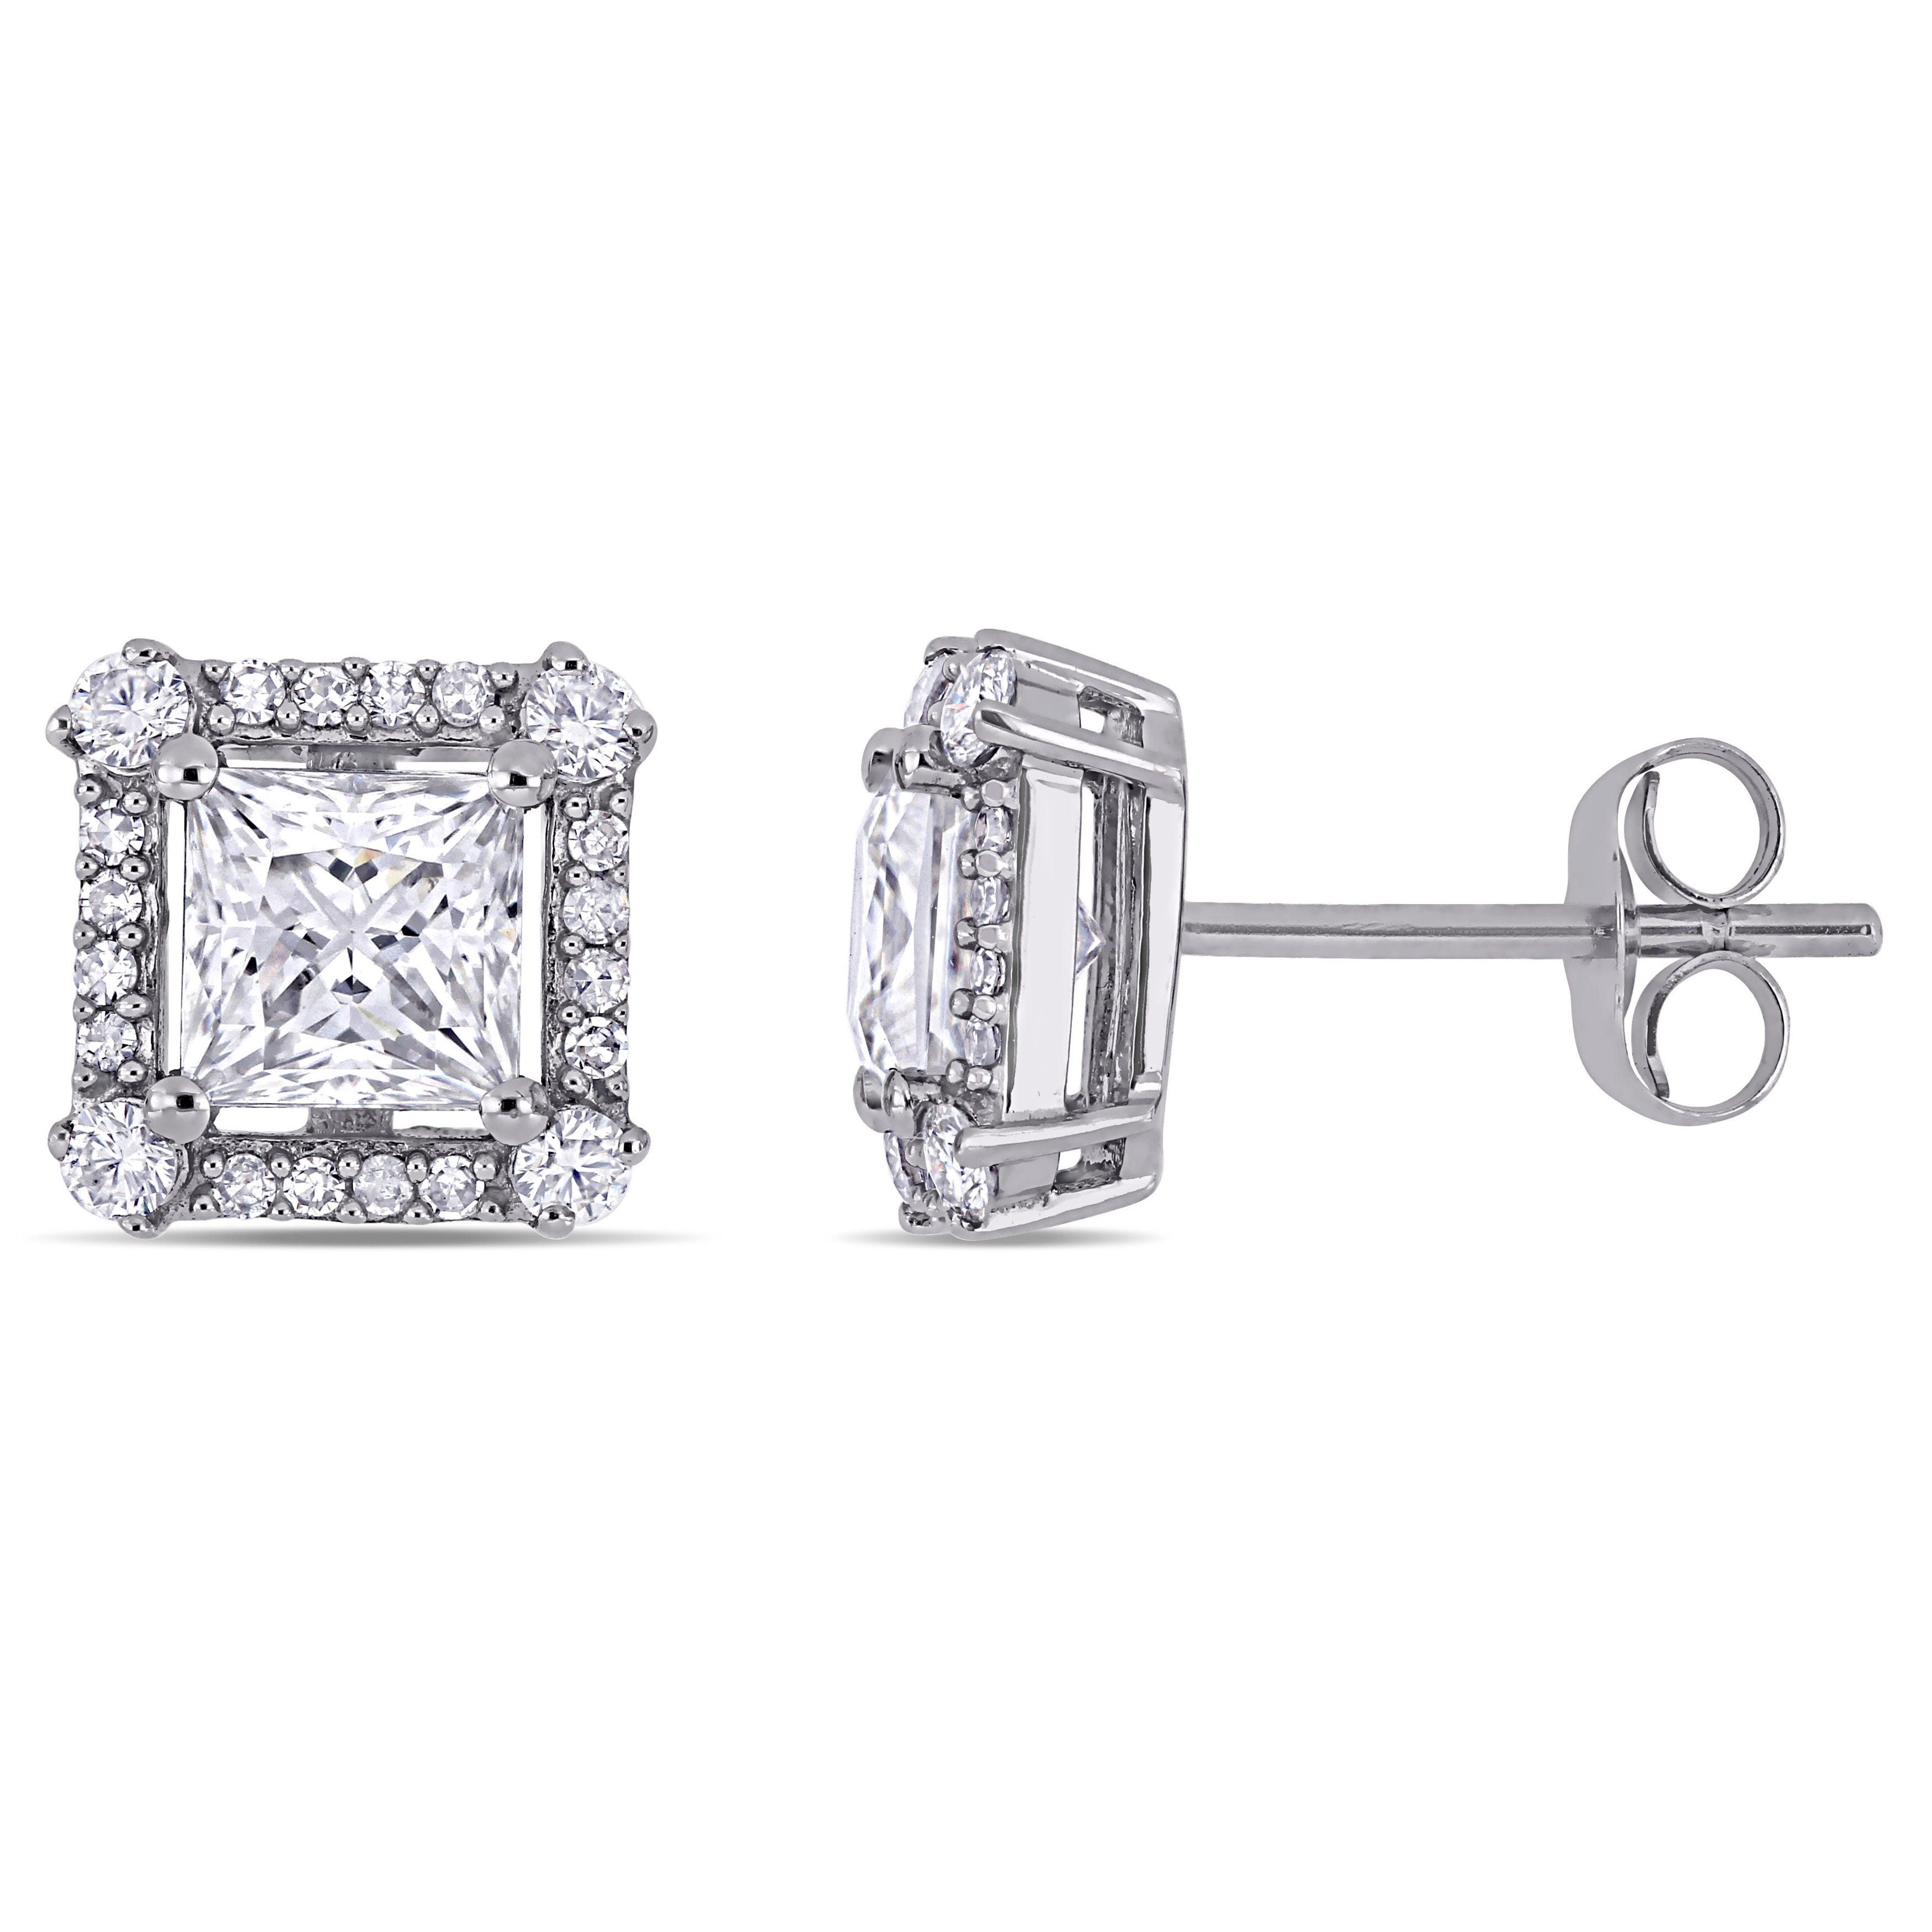 Moissanite and Diamond Halo Stud Earrings in 10k White Gold